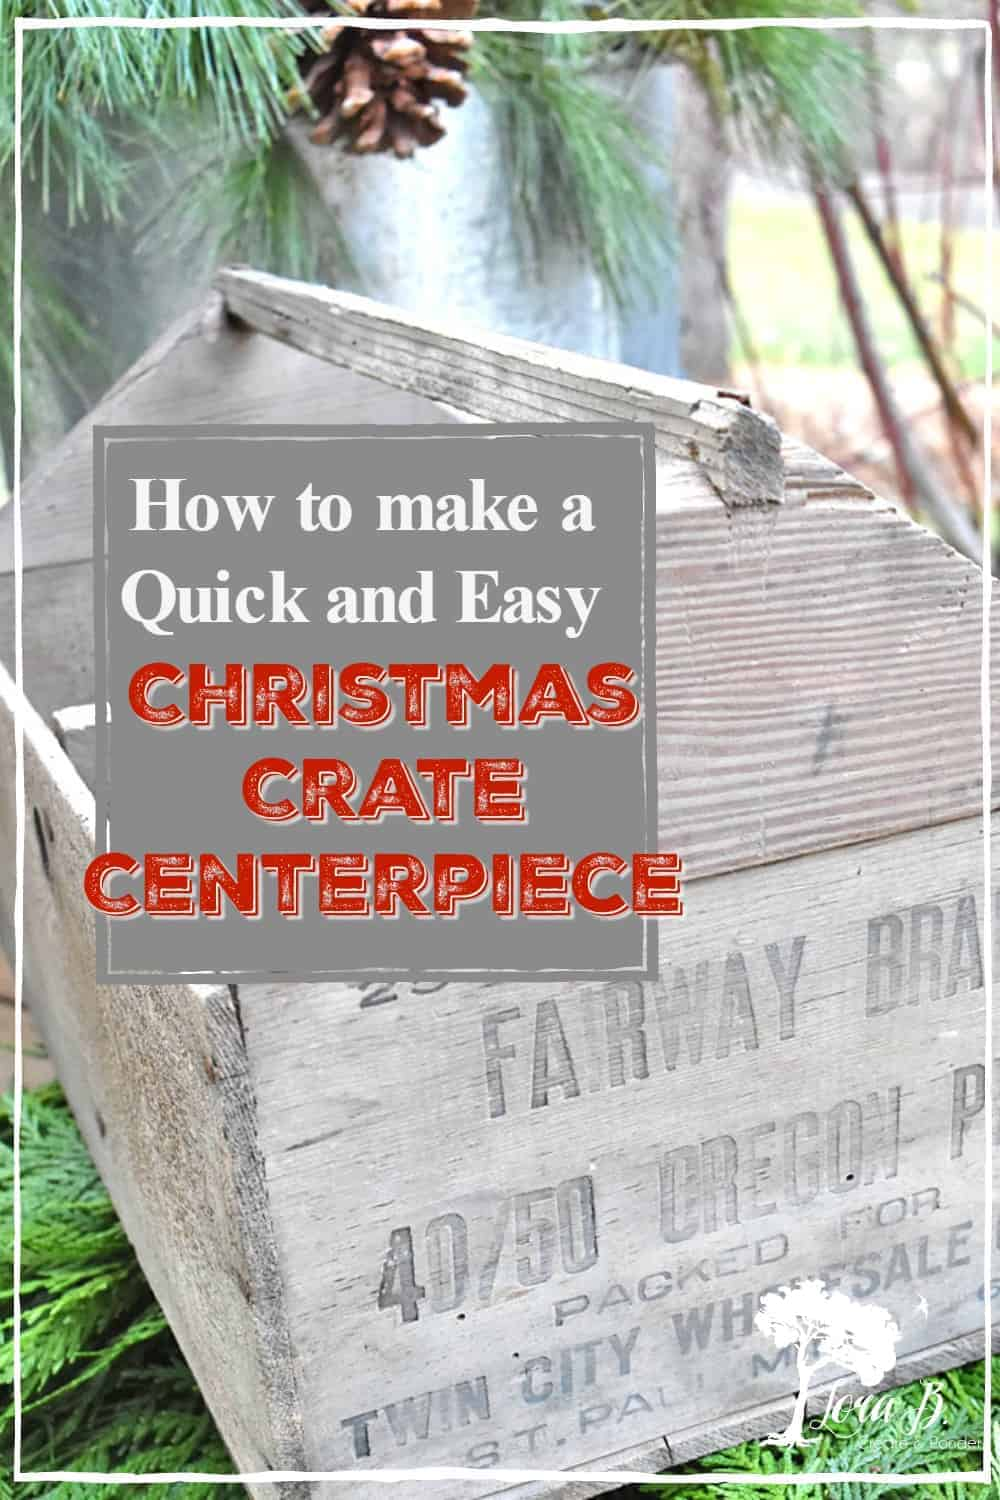 Quick and Easy Christmas Crate Centerpiece